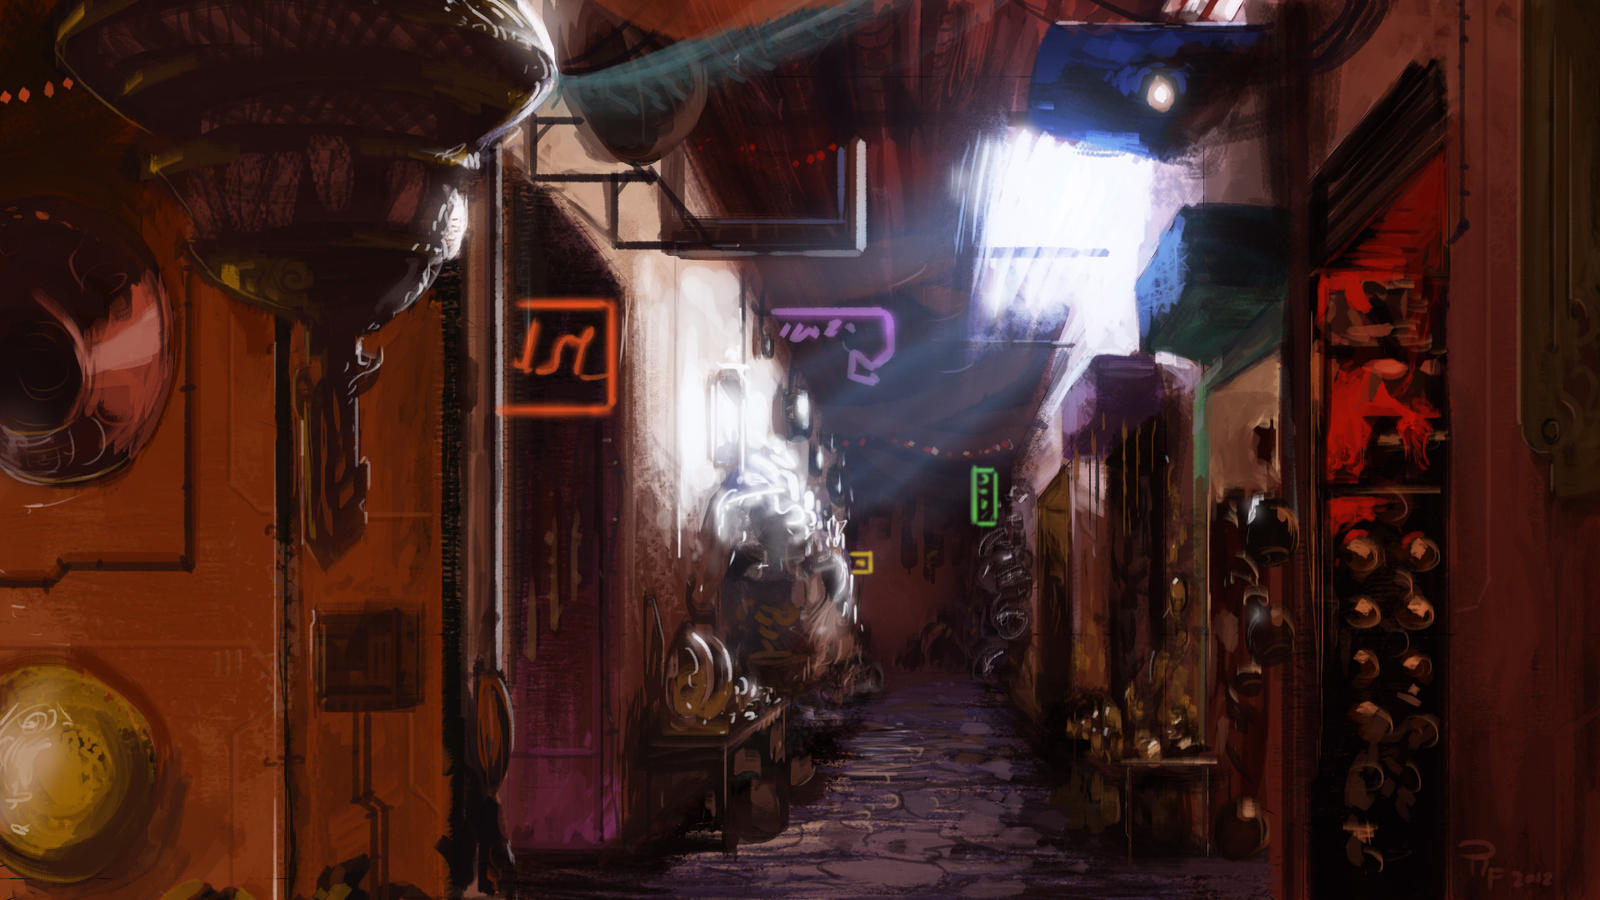 Silverlight bazaar by 1Rich1